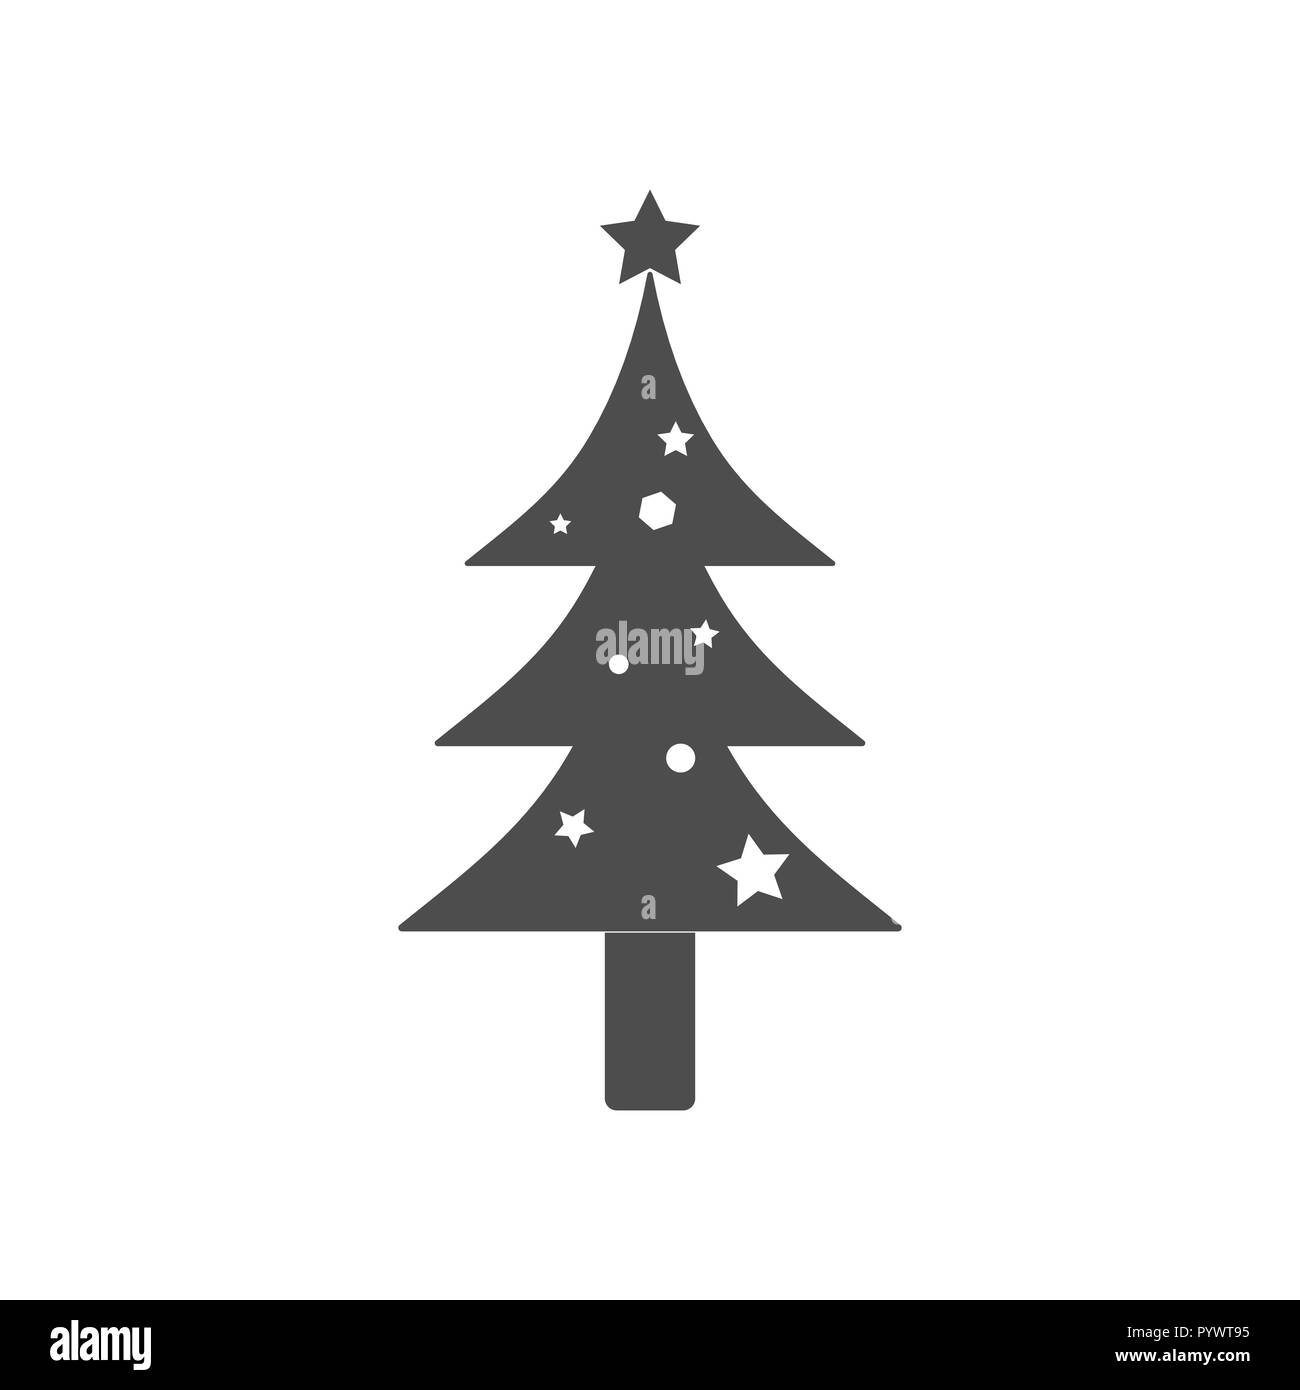 Christmas Tree Icon.Christmas Tree Icon Vector Illustrations Flat Design Stock